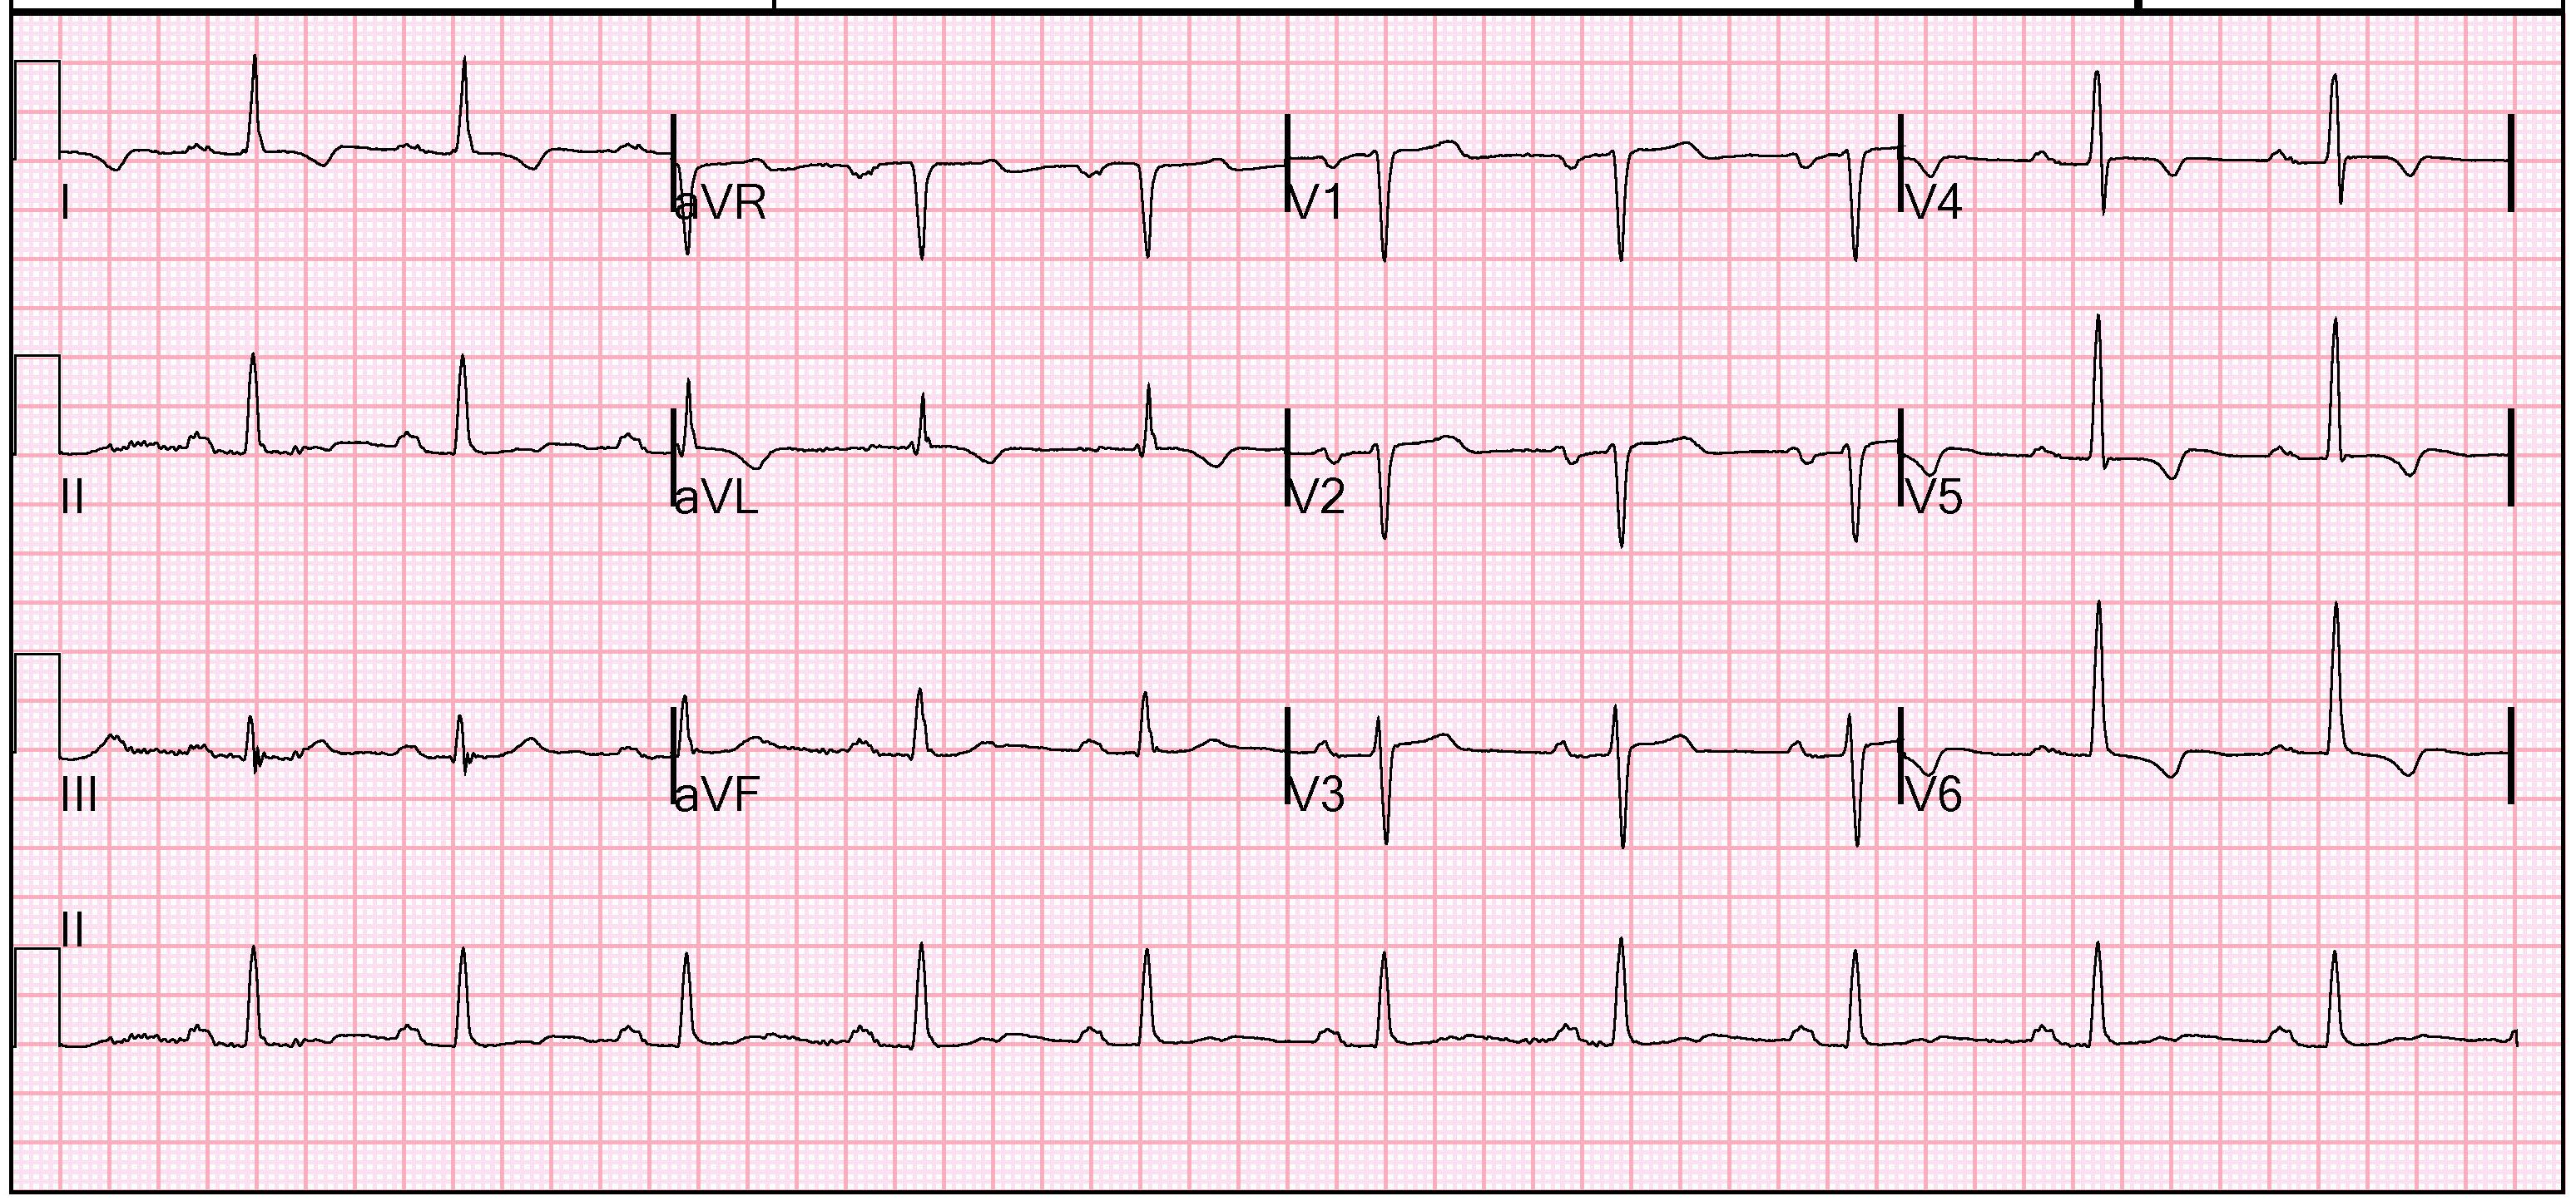 small resolution of image result for images of normal 12 lead ecg rhythm on ecg strip